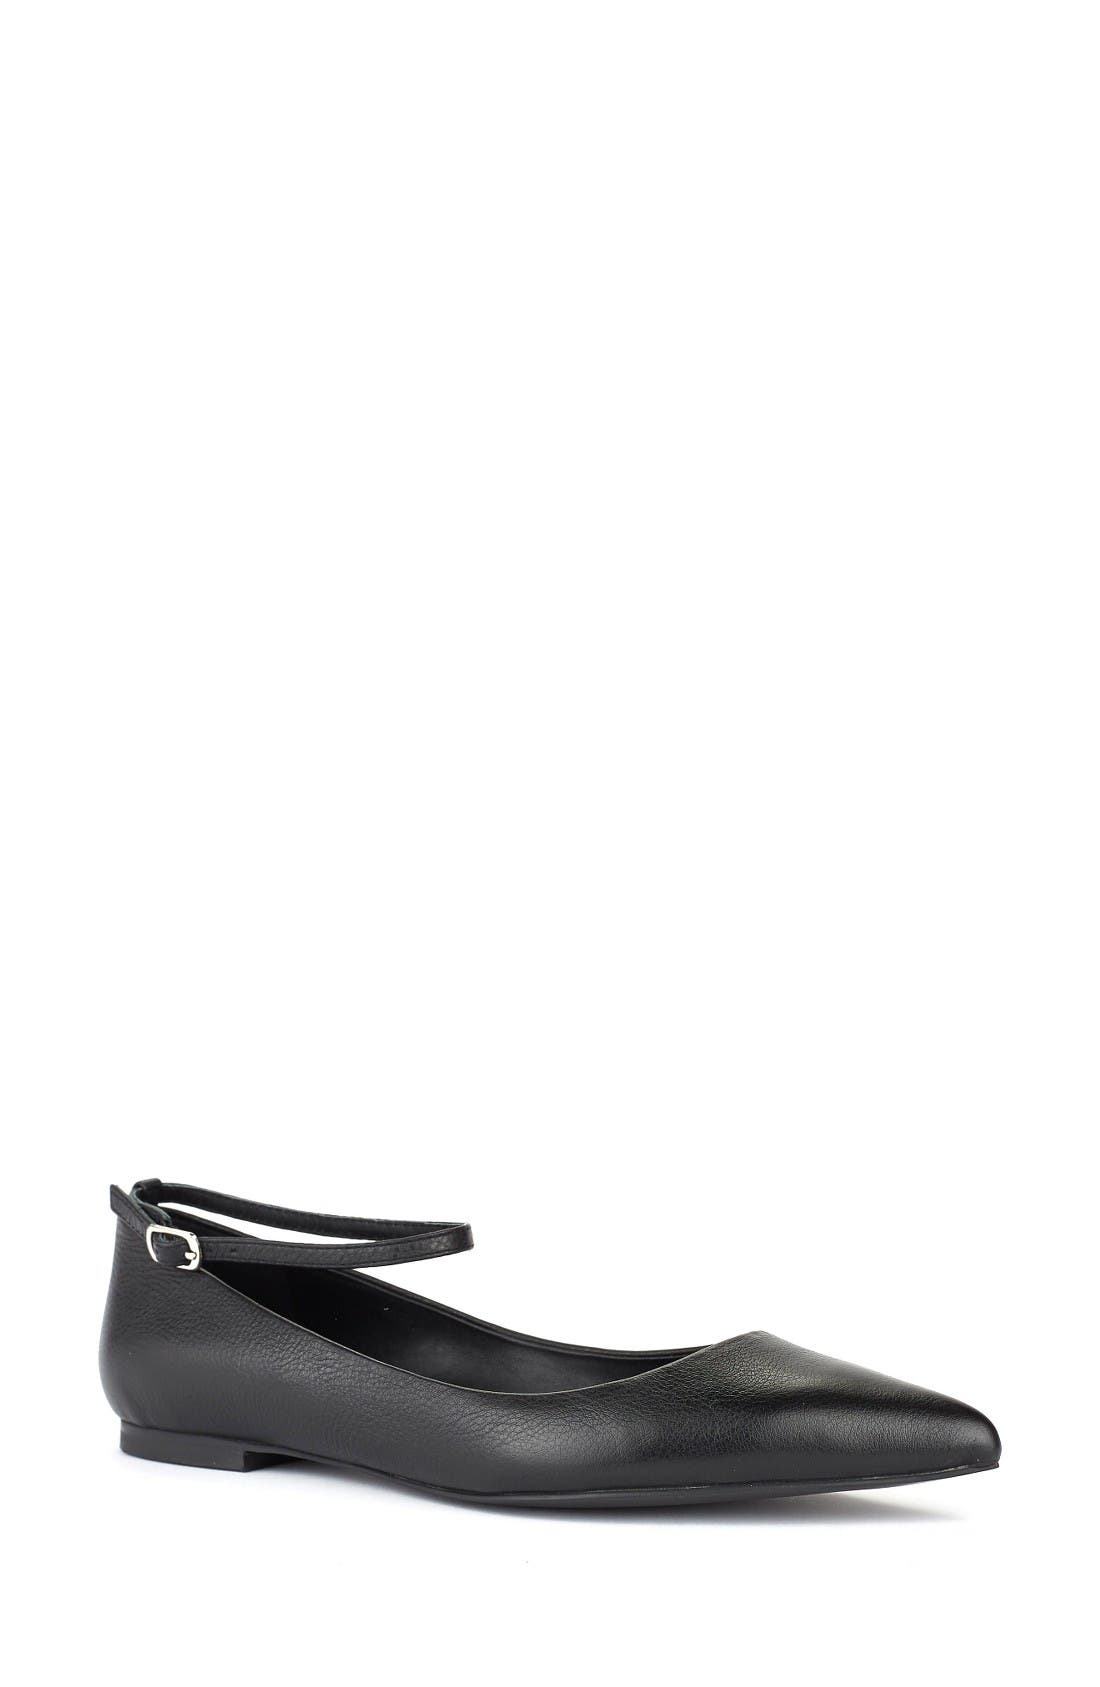 Alternate Image 1 Selected - Shoes of Prey Ankle Strap Flat (Women)